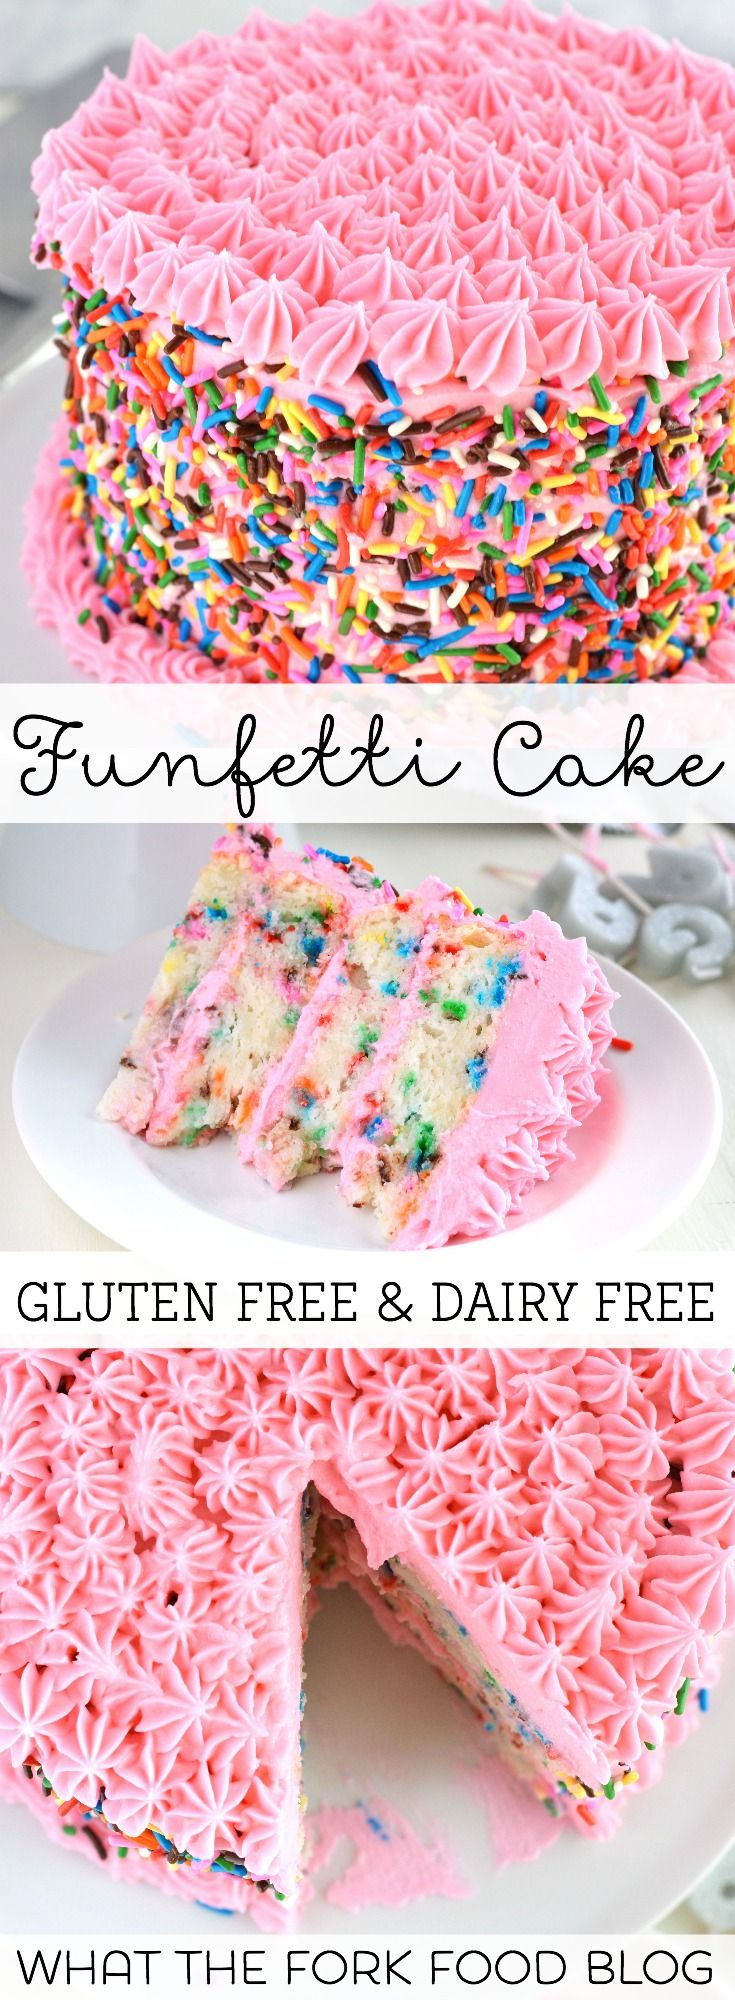 Today's post was sponsored by Collective Bias, Inc. and its advertiser. All opinions are mine alone. #SendSmiles #CollectiveBias This gluten free funfetti cake is perfect for birthday celebrations. The gluten free and dairy free white cake is light and airy and filled with colorful sprinkles. Finish it off with diary free frosting and extra sprinkles for...